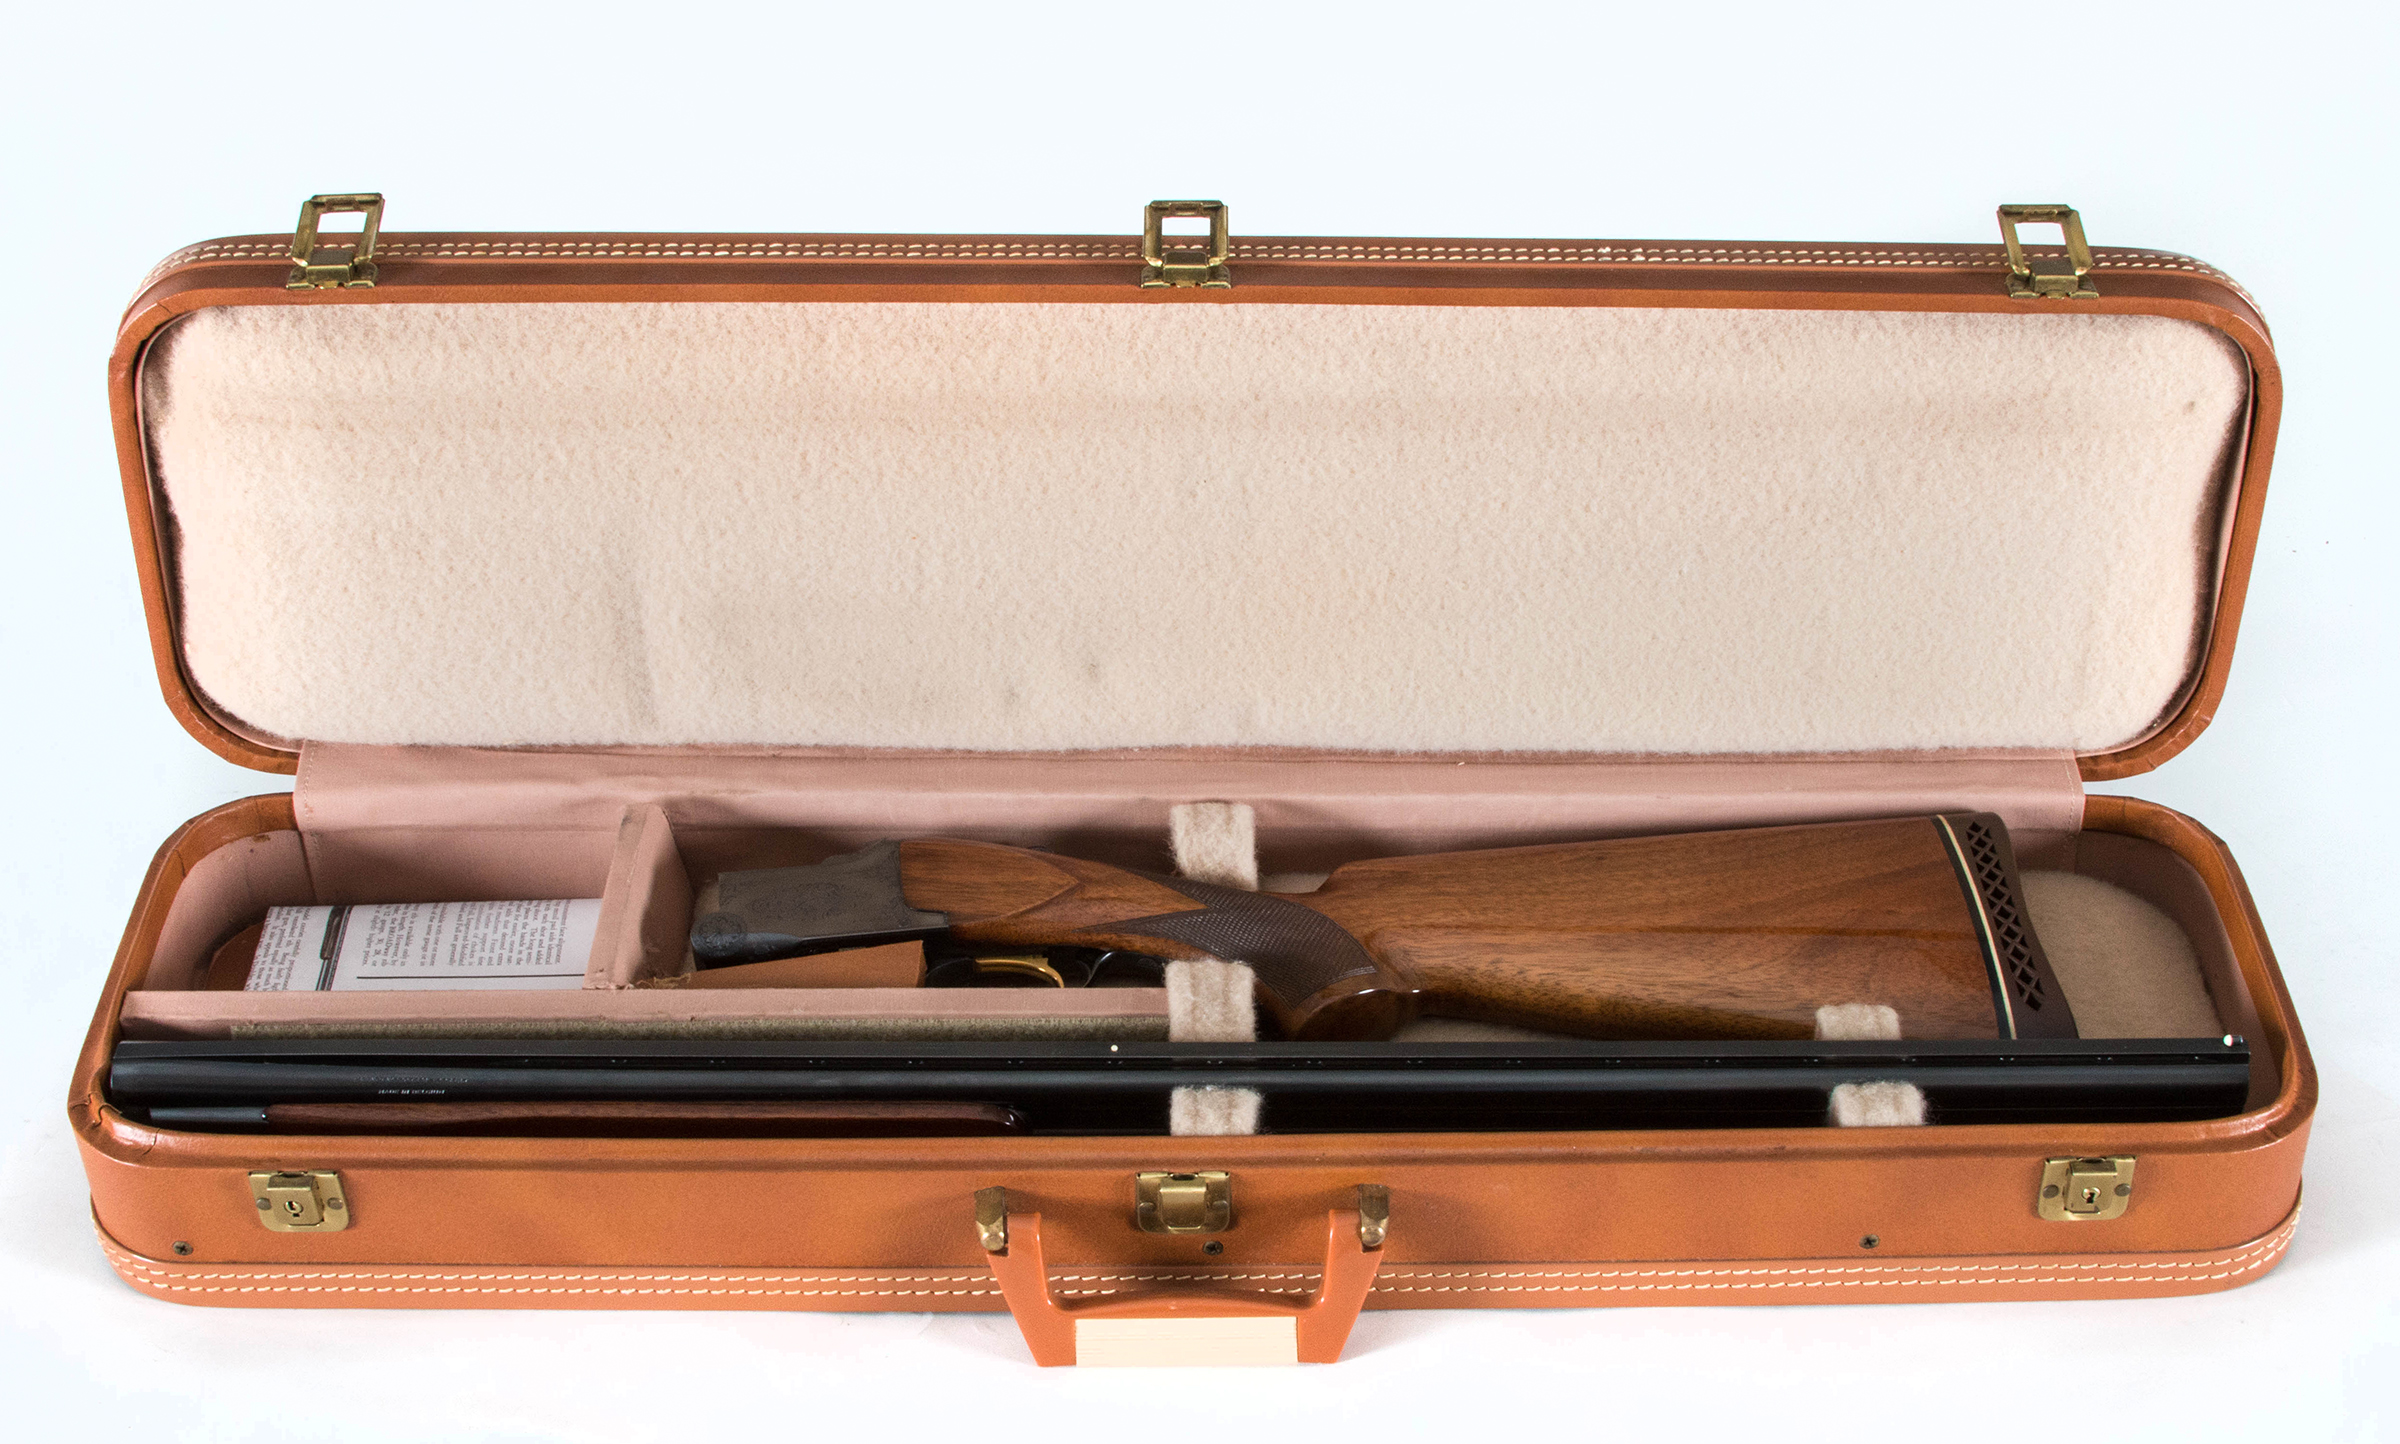 Browning Superposed Trap Sold - Turnbull Restoration